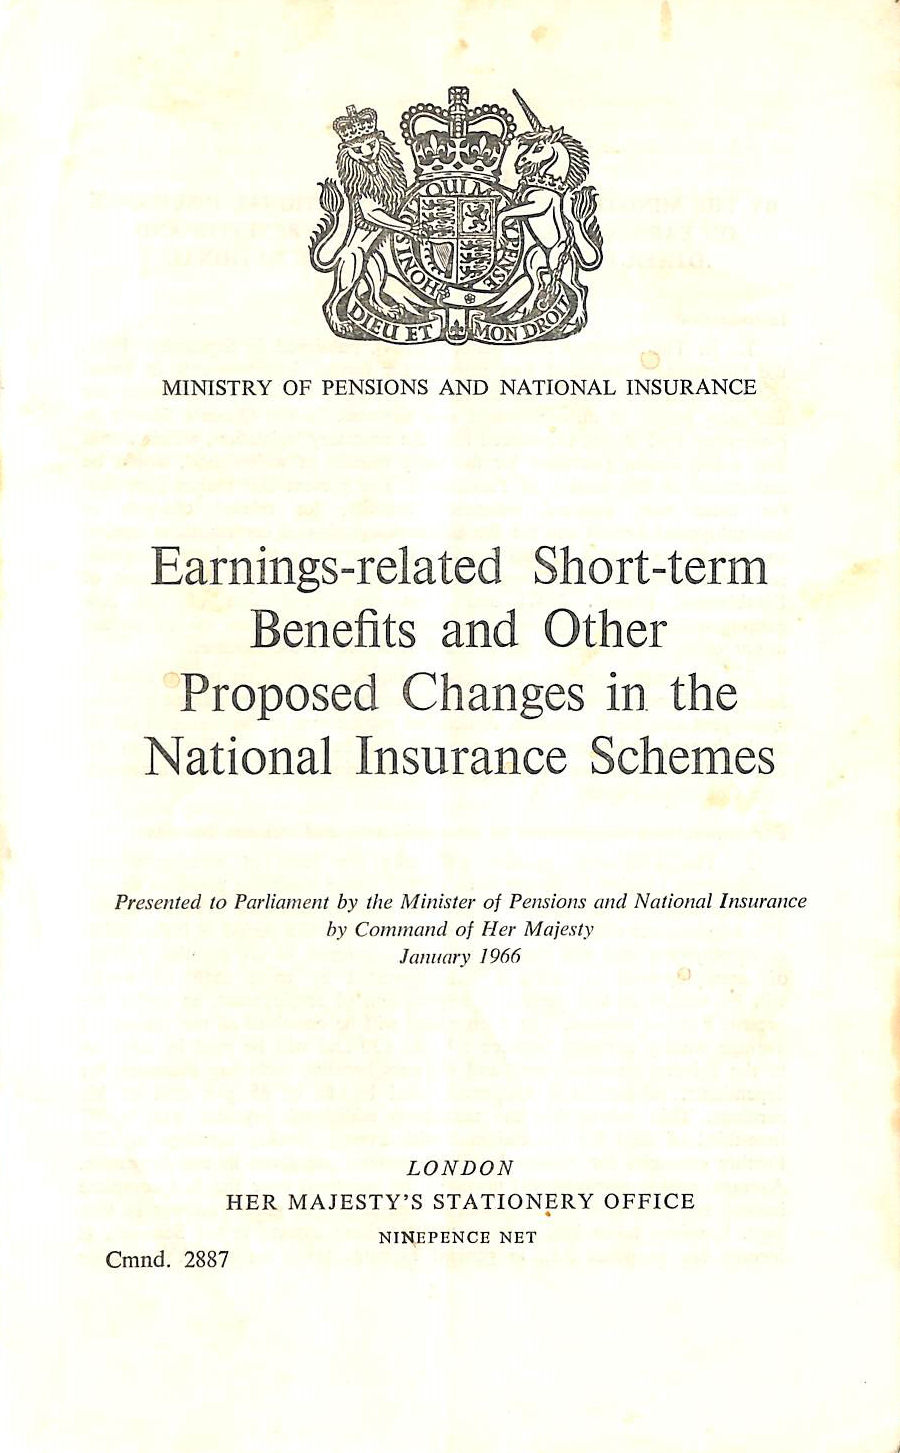 Image for Earnings-related Short-term Benefits and Other Proposed Changes in the National Insurance Schemes